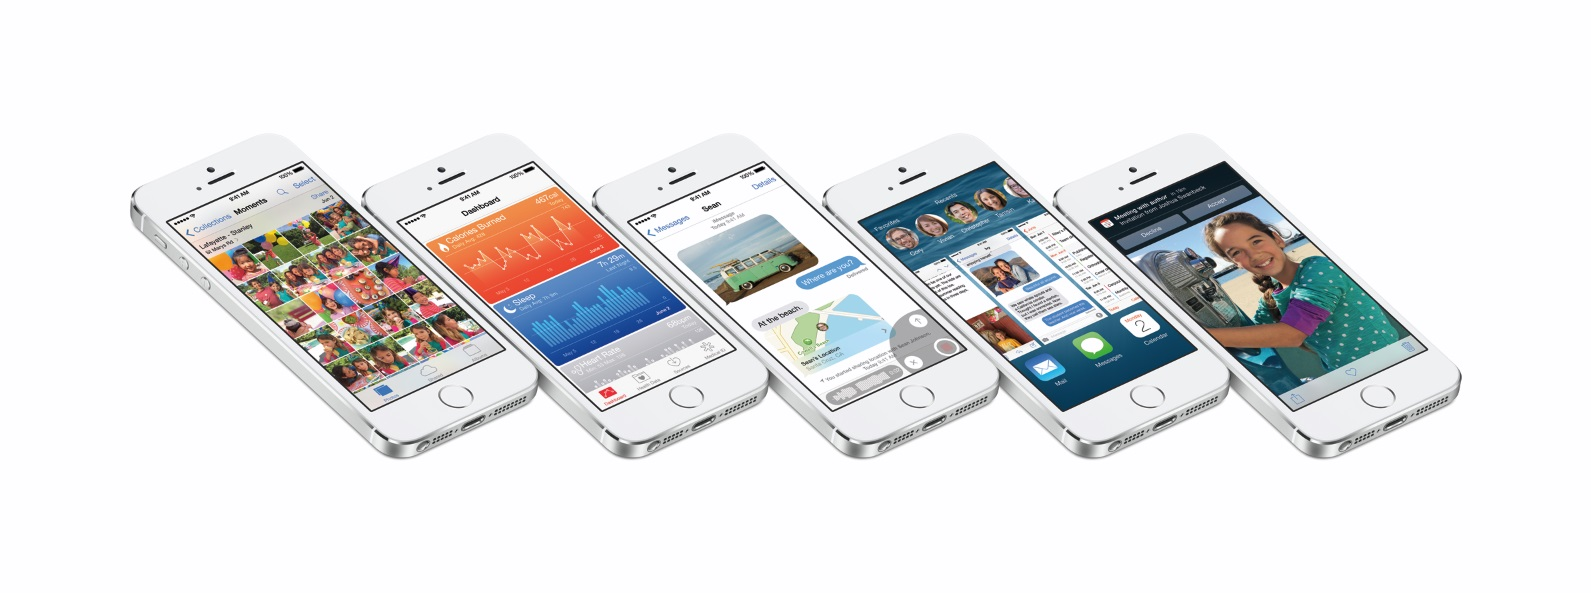 Apple lancerer iOS 8 den 17. september